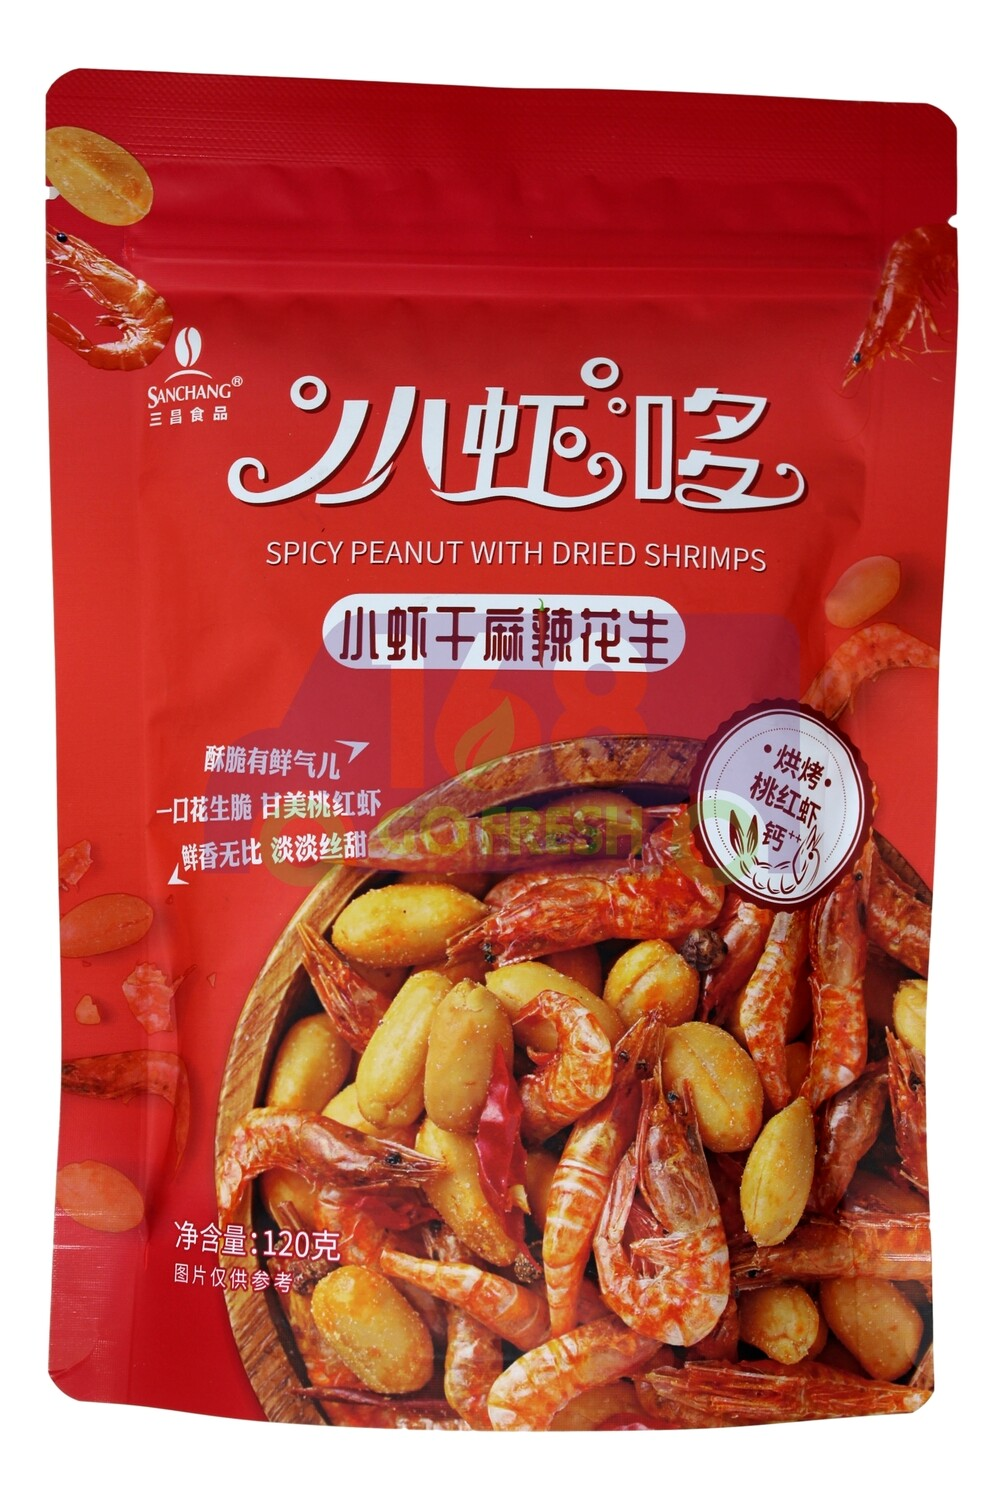 SPICY PEANUTS WITH DRIED SHRIMPS 小虾哆 小虾干麻辣花生(120G)